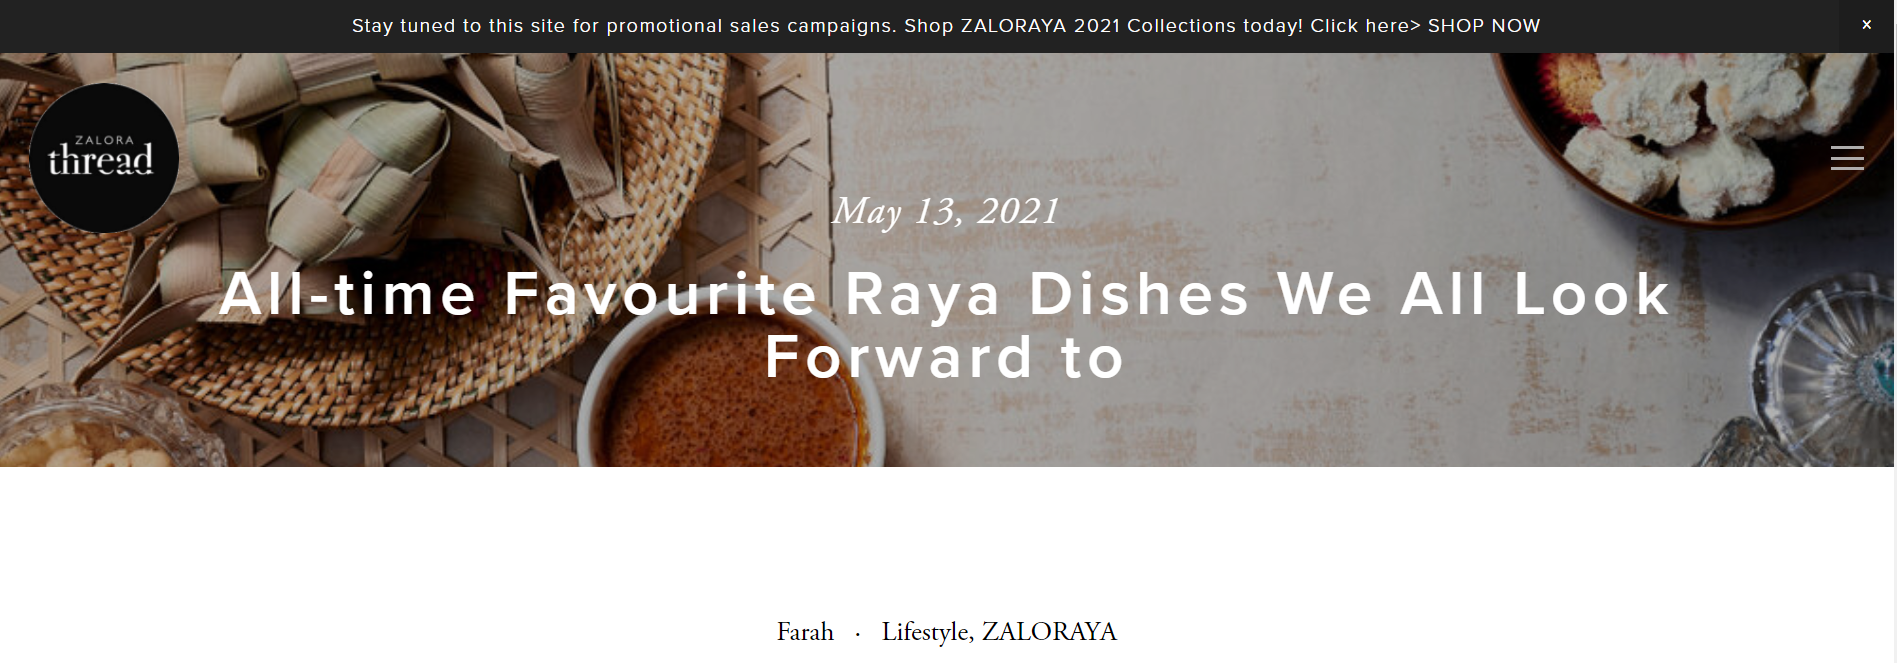 All-time Favourite Raya Dishes We All Look Forward to